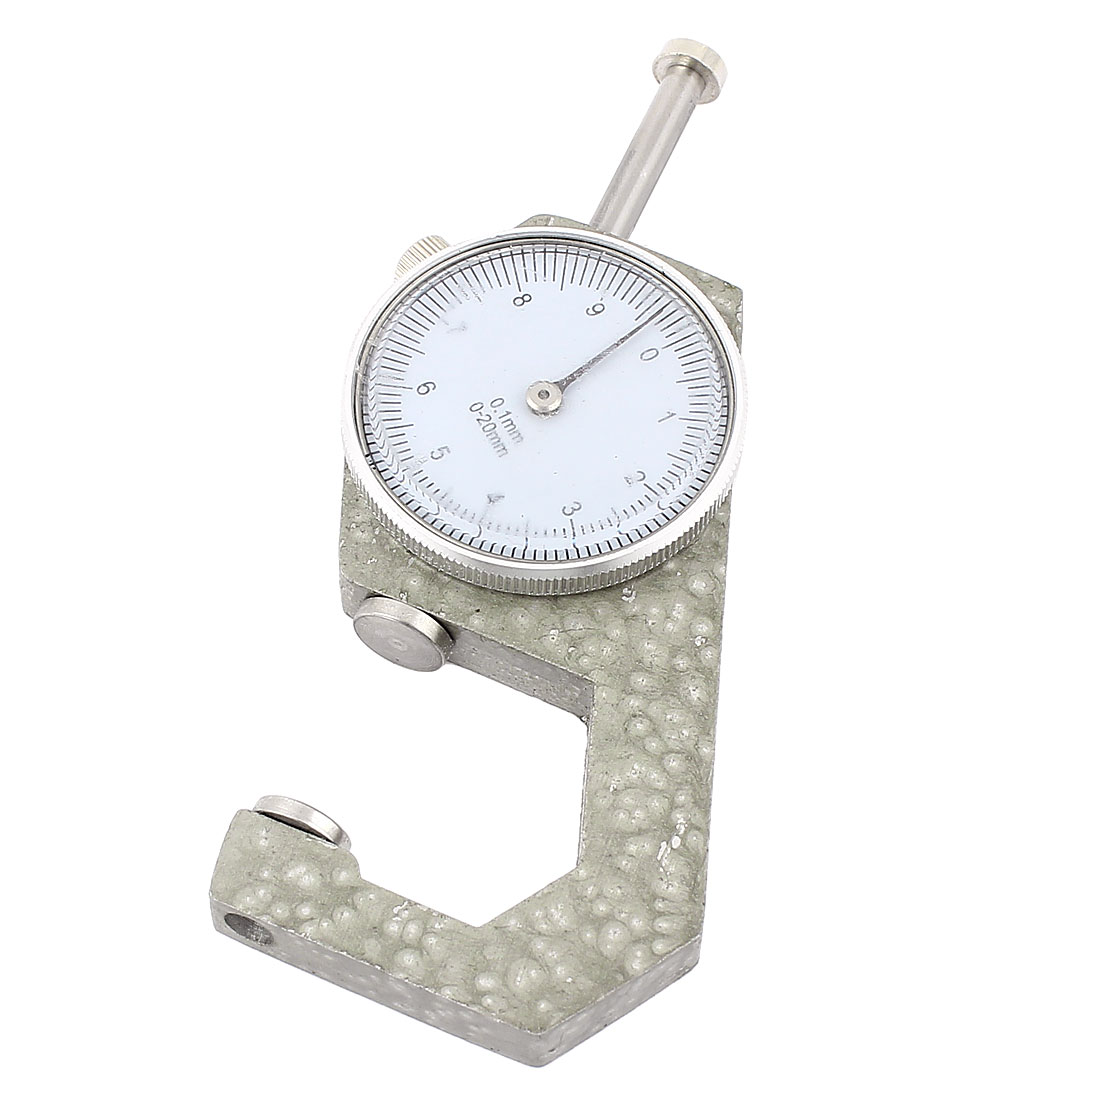 0-20mm x 0.1mm Dial Thickness Gauge Gage Pocket Measuring Tool Gray